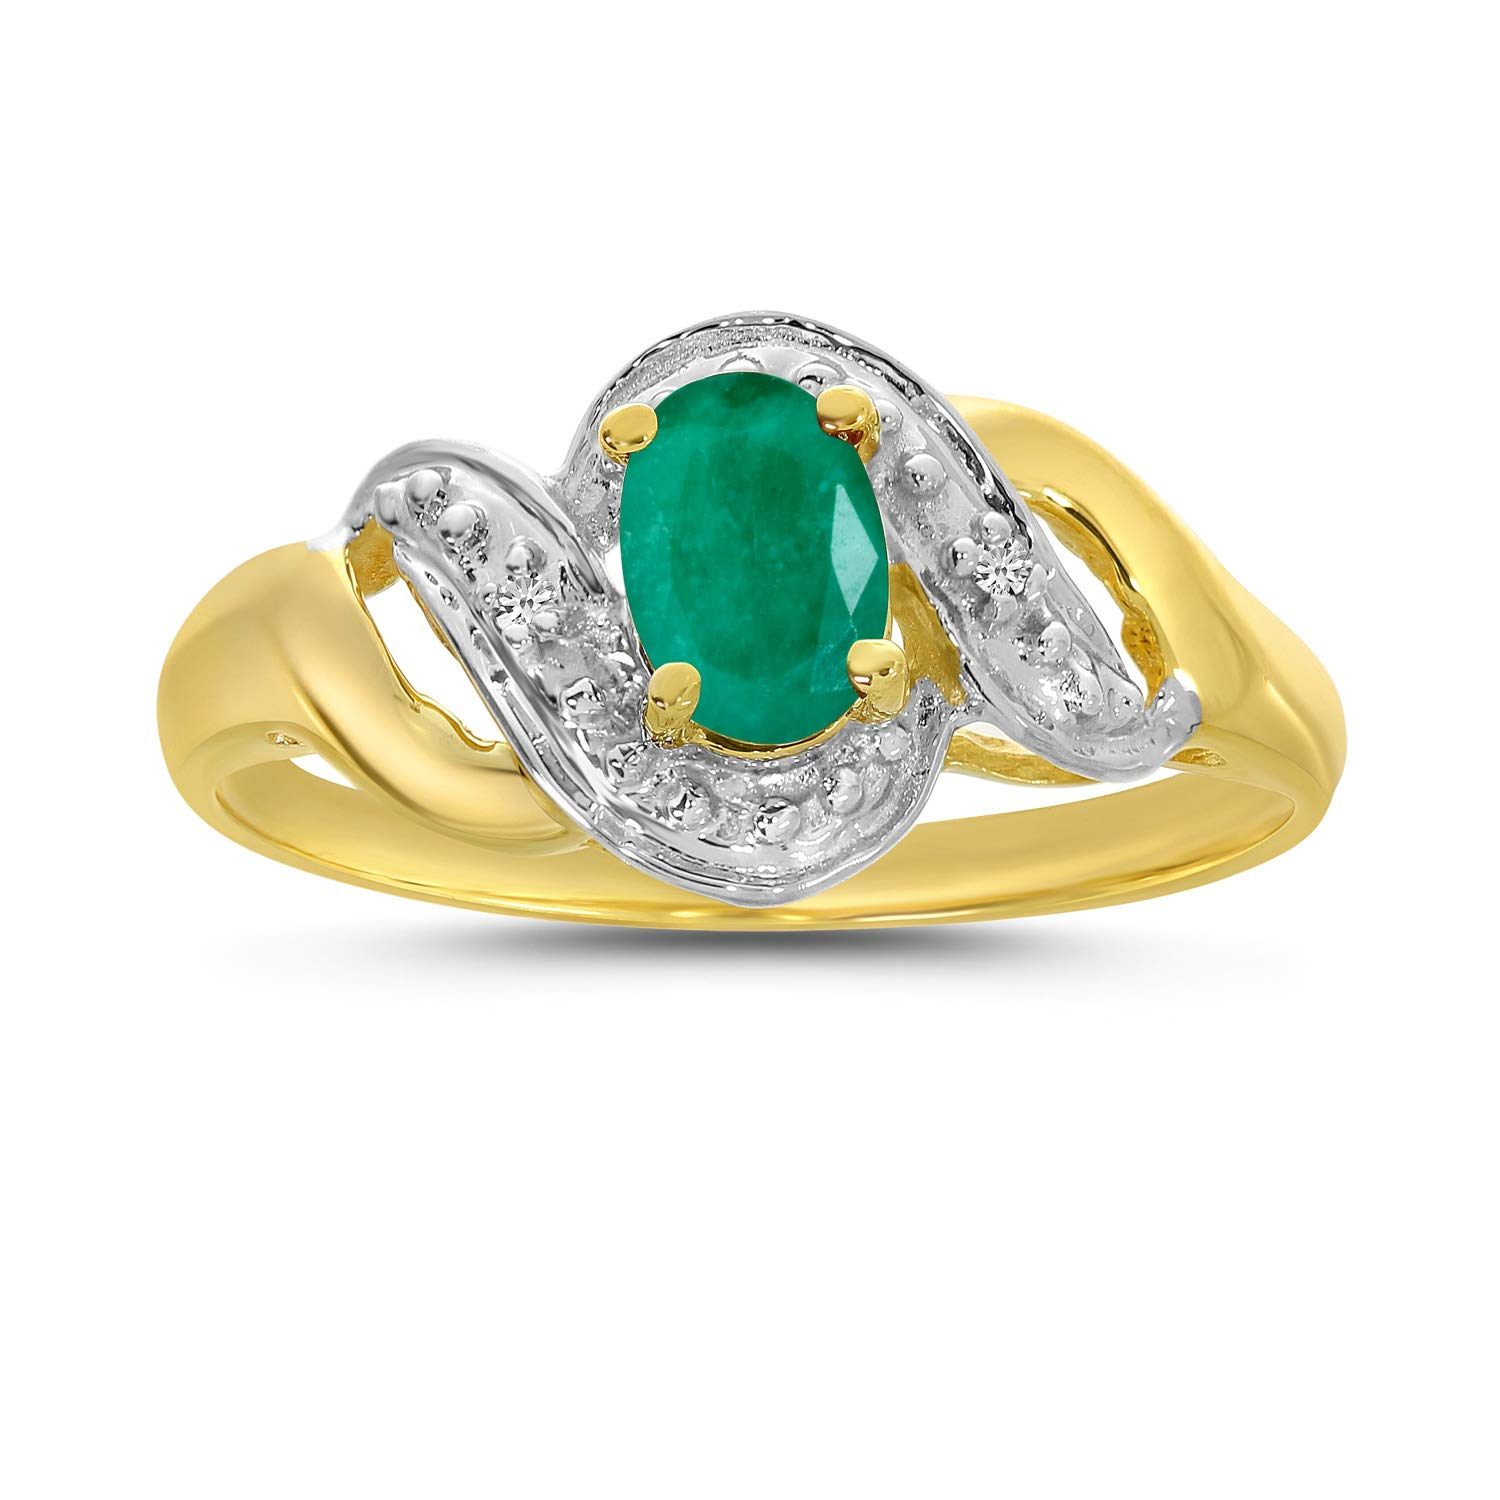 10k Yellow Gold Oval Emerald And Diamond Swirl Ring (Size 6.5) by Direct-Jewelry